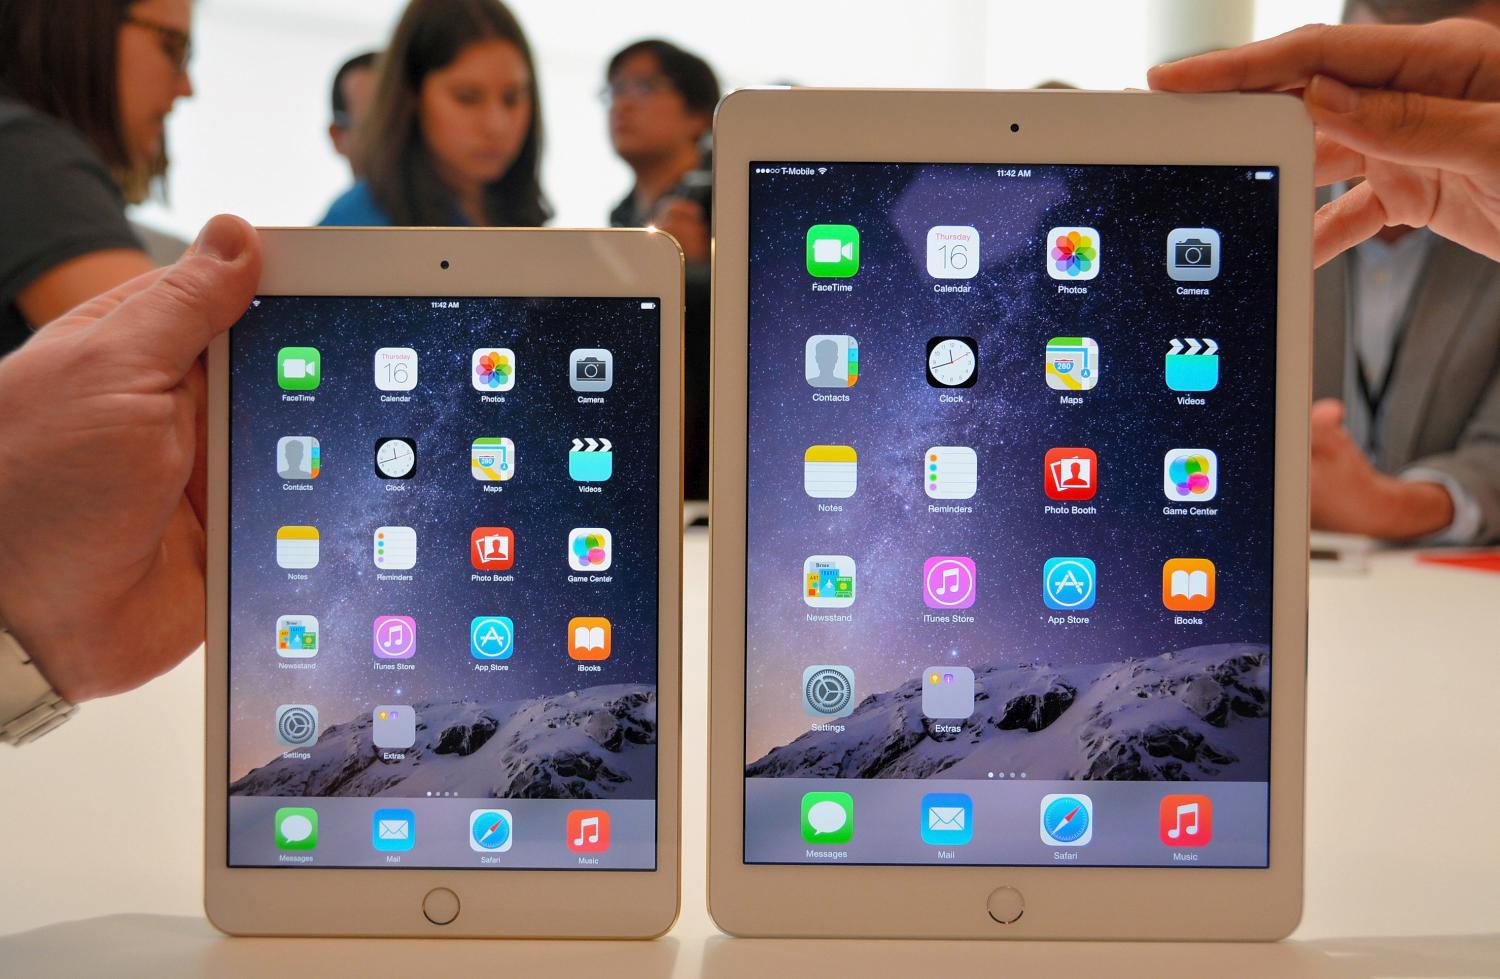 Best iPad: iPad Air 2 vs iPad Air vs iPad Mini 3 vs iPad Mini 2